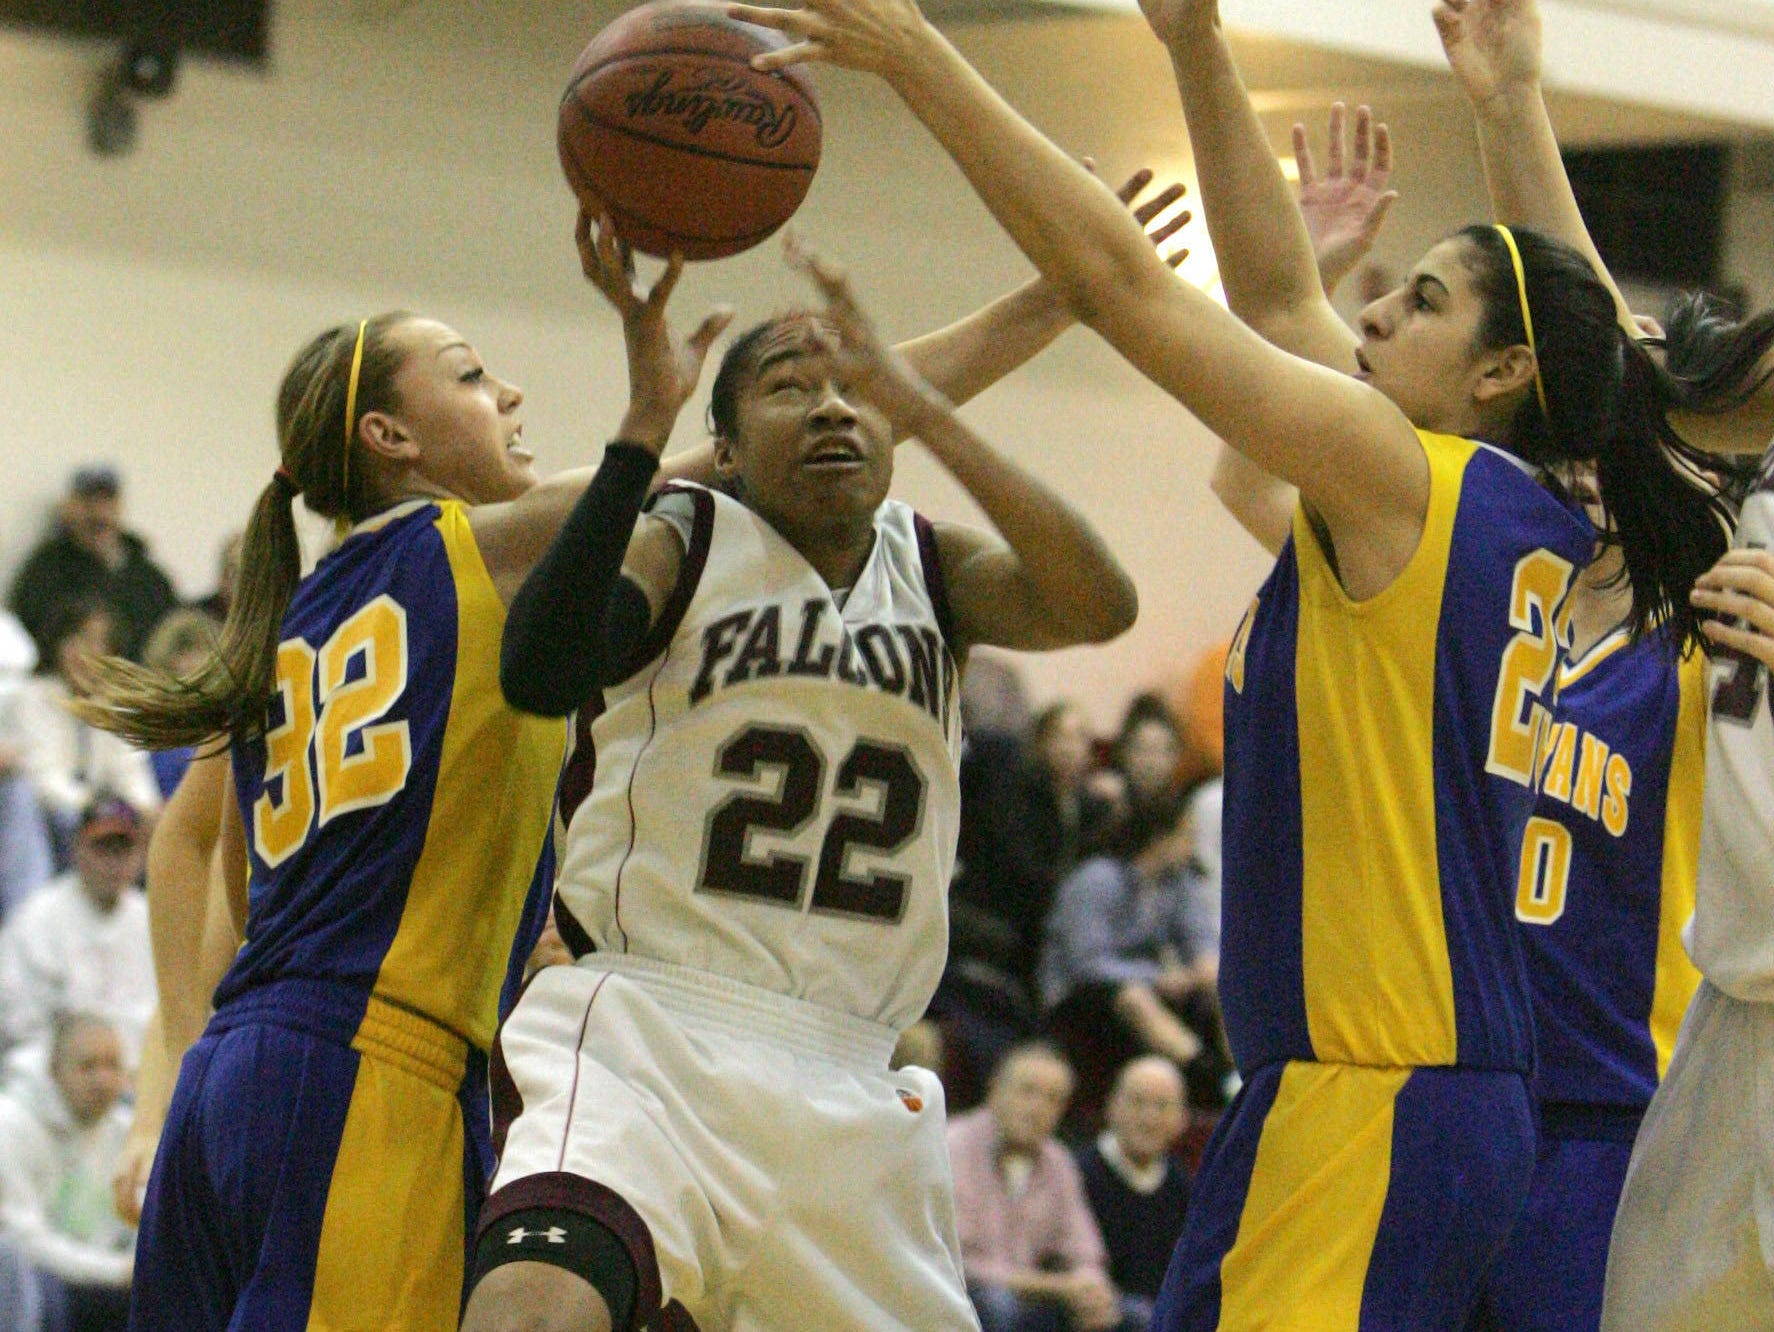 Alaina Walker of Albertus Magnus drives between Megan Jacoby, right, and Erica Spera of Maine-Endwell in the regional girls semi-final game at Vassar College in Poughkeepsie March 11, 2009.  Magnus defeated Maine-Endwell 43-27.